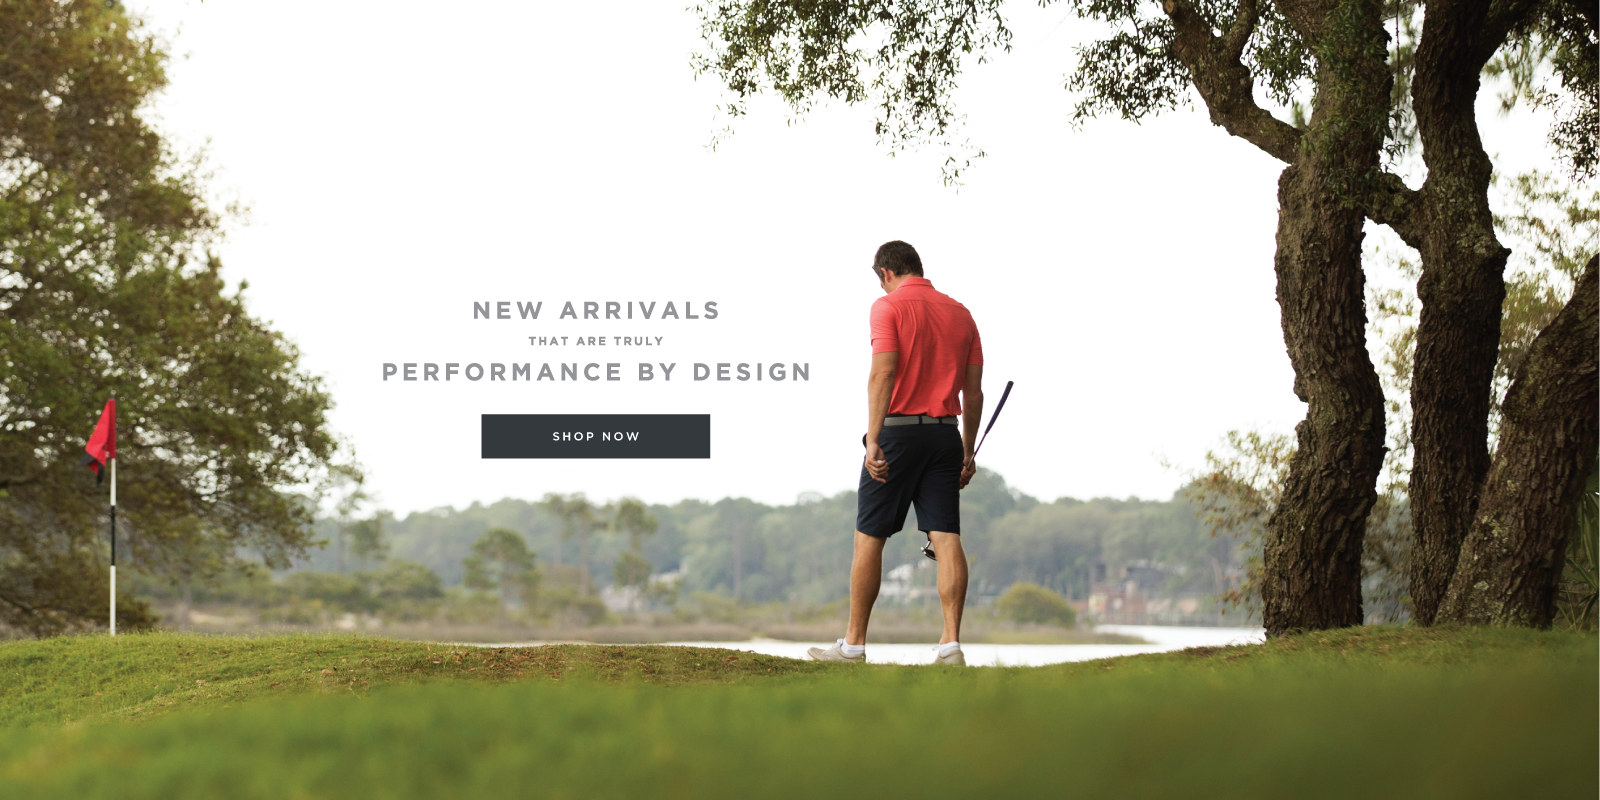 New Arrivals That Are Truly Performance By Design